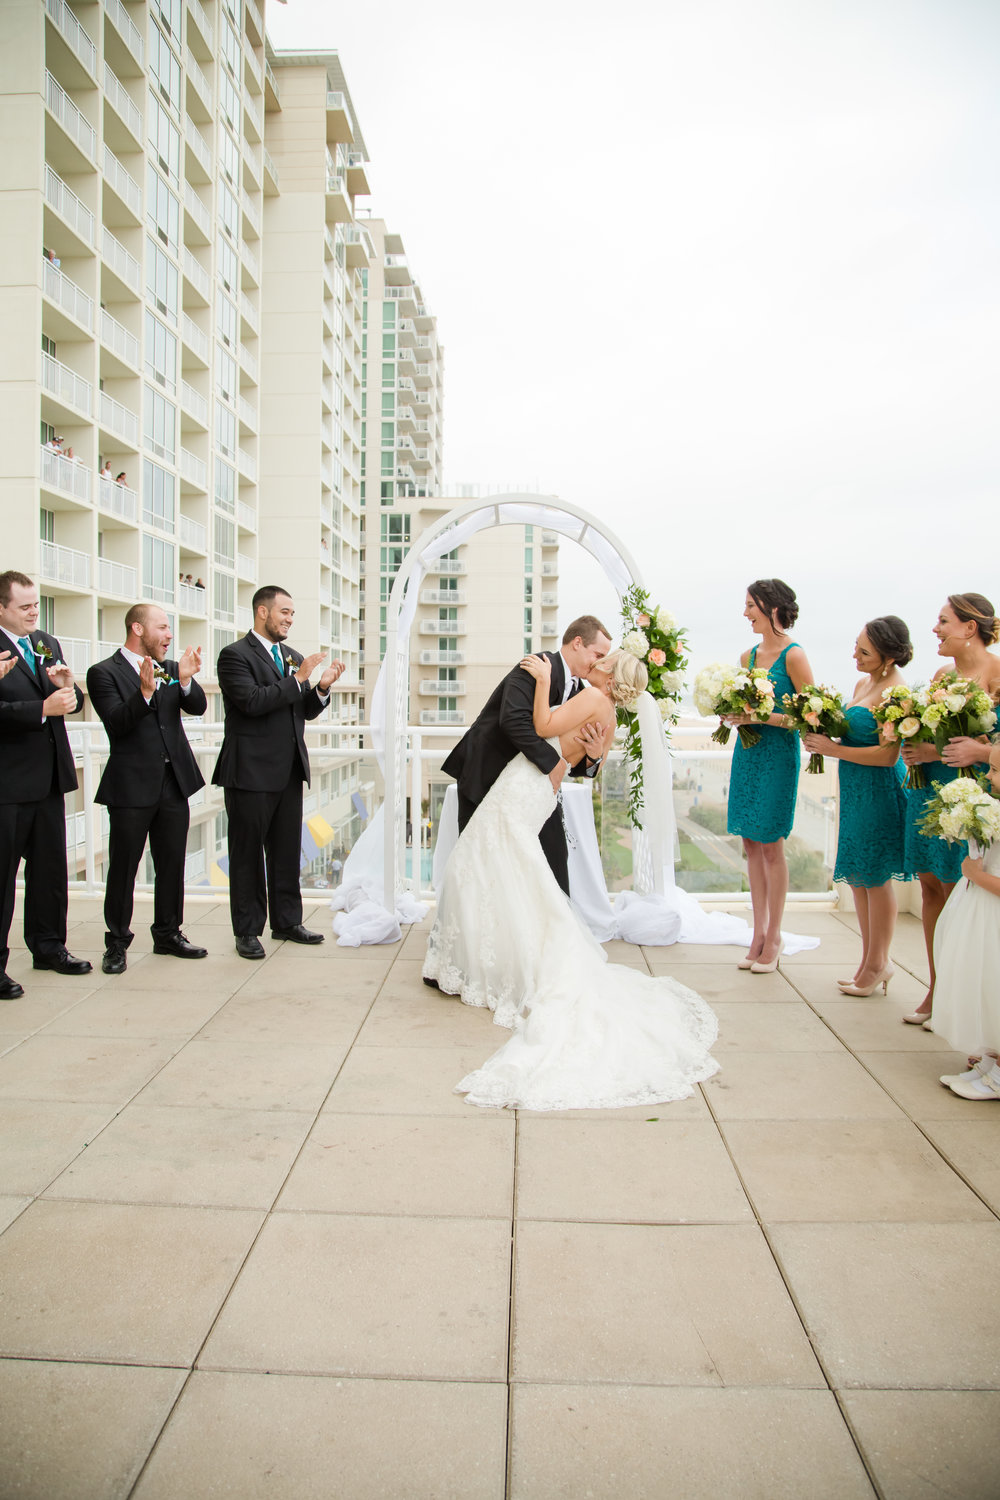 Downing_wedding_RachaelReidPhotography_-398.jpg